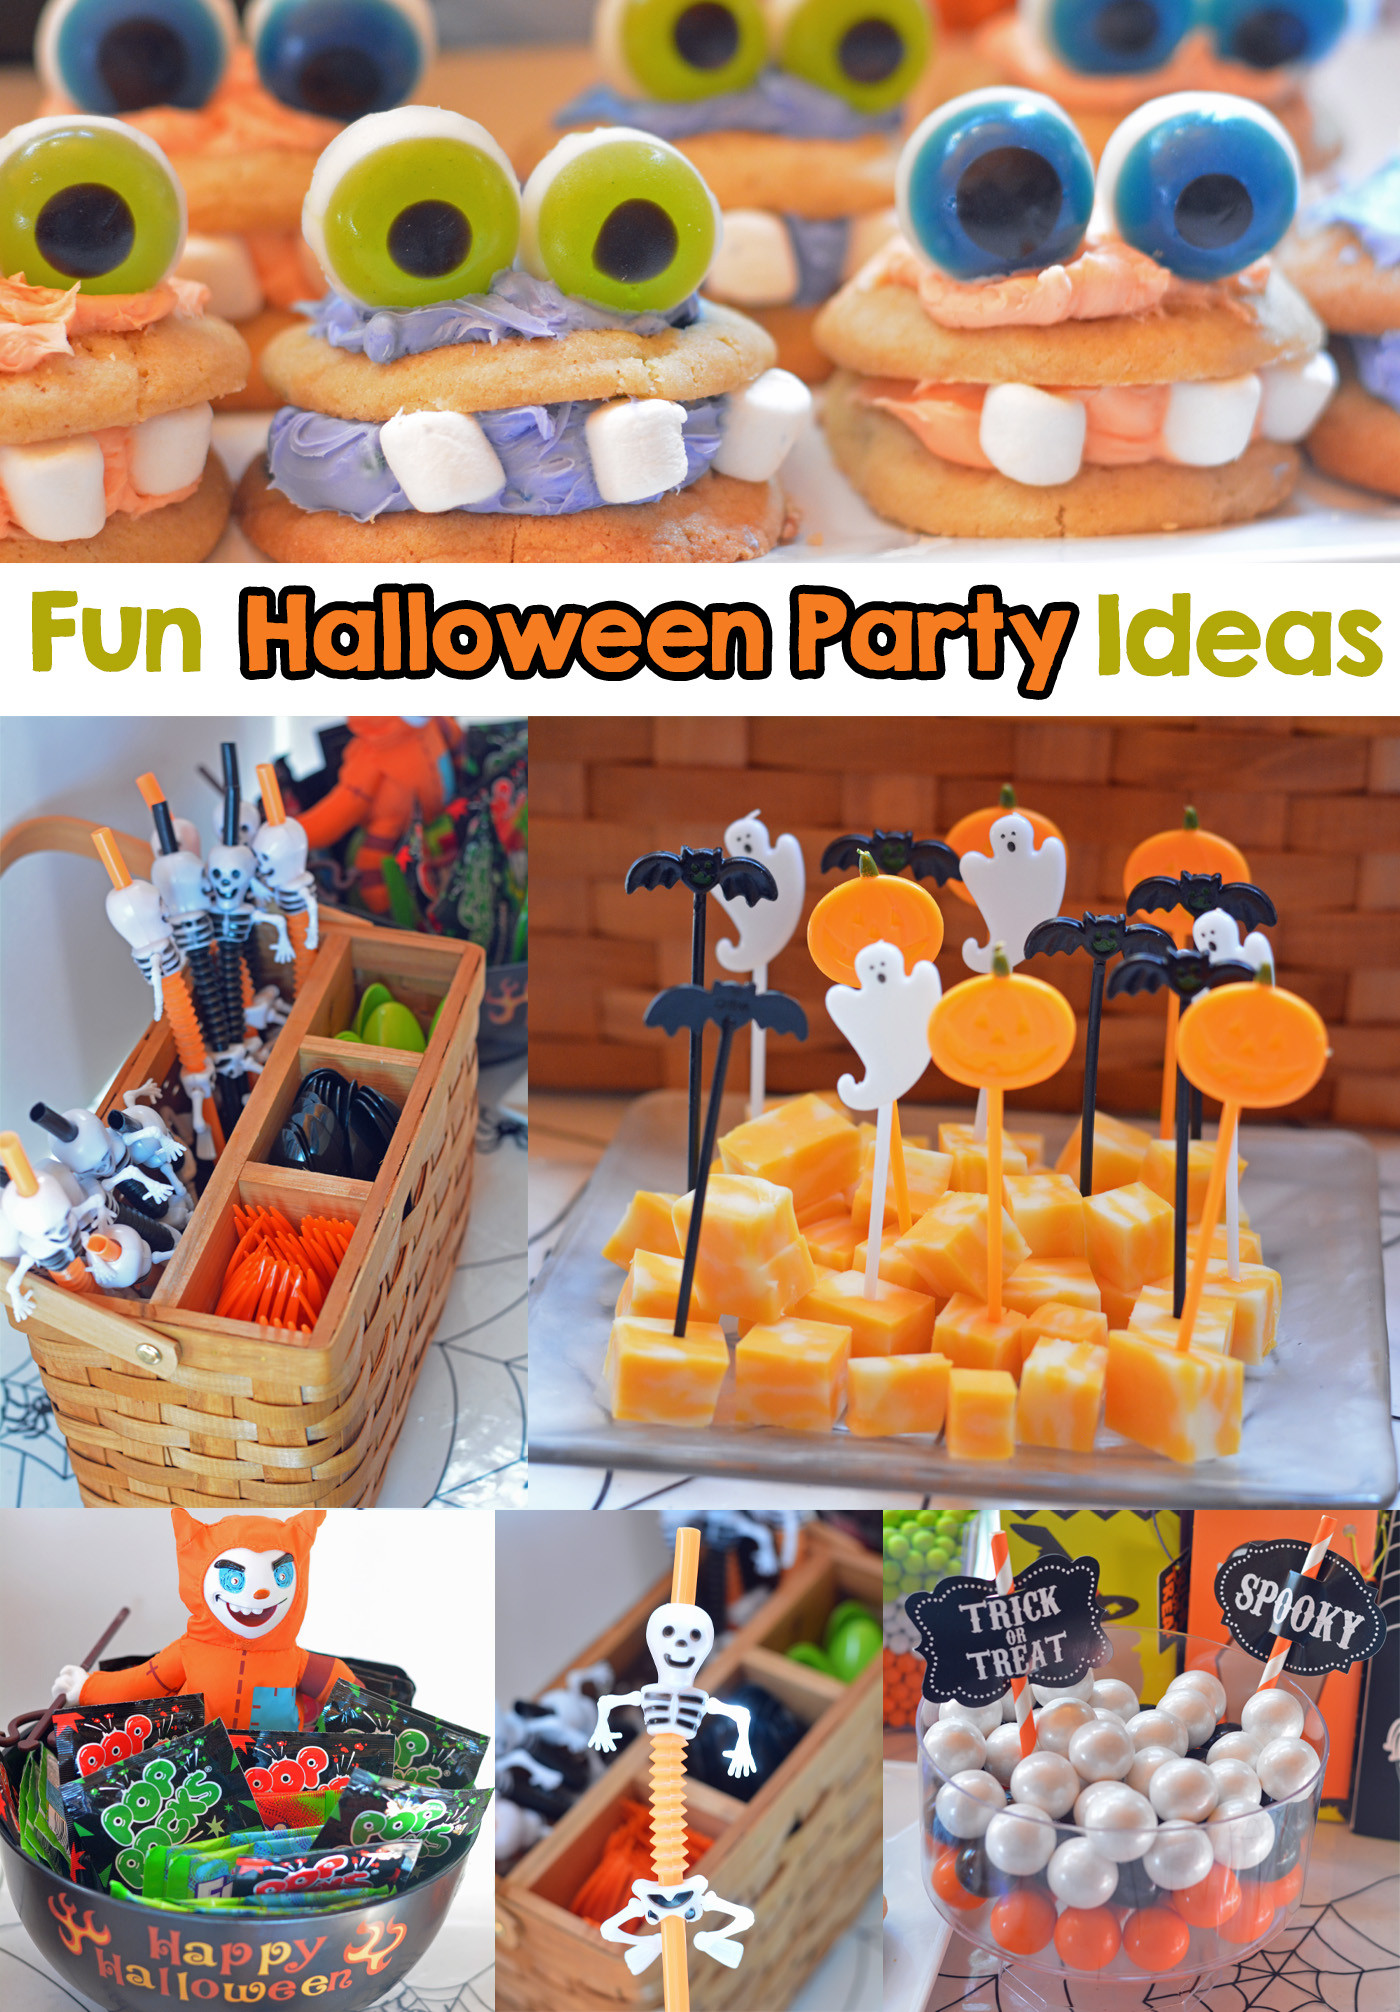 Funny Halloween Party Ideas  Fun Halloween Party & Costume Ideas Mommy s Fabulous Finds